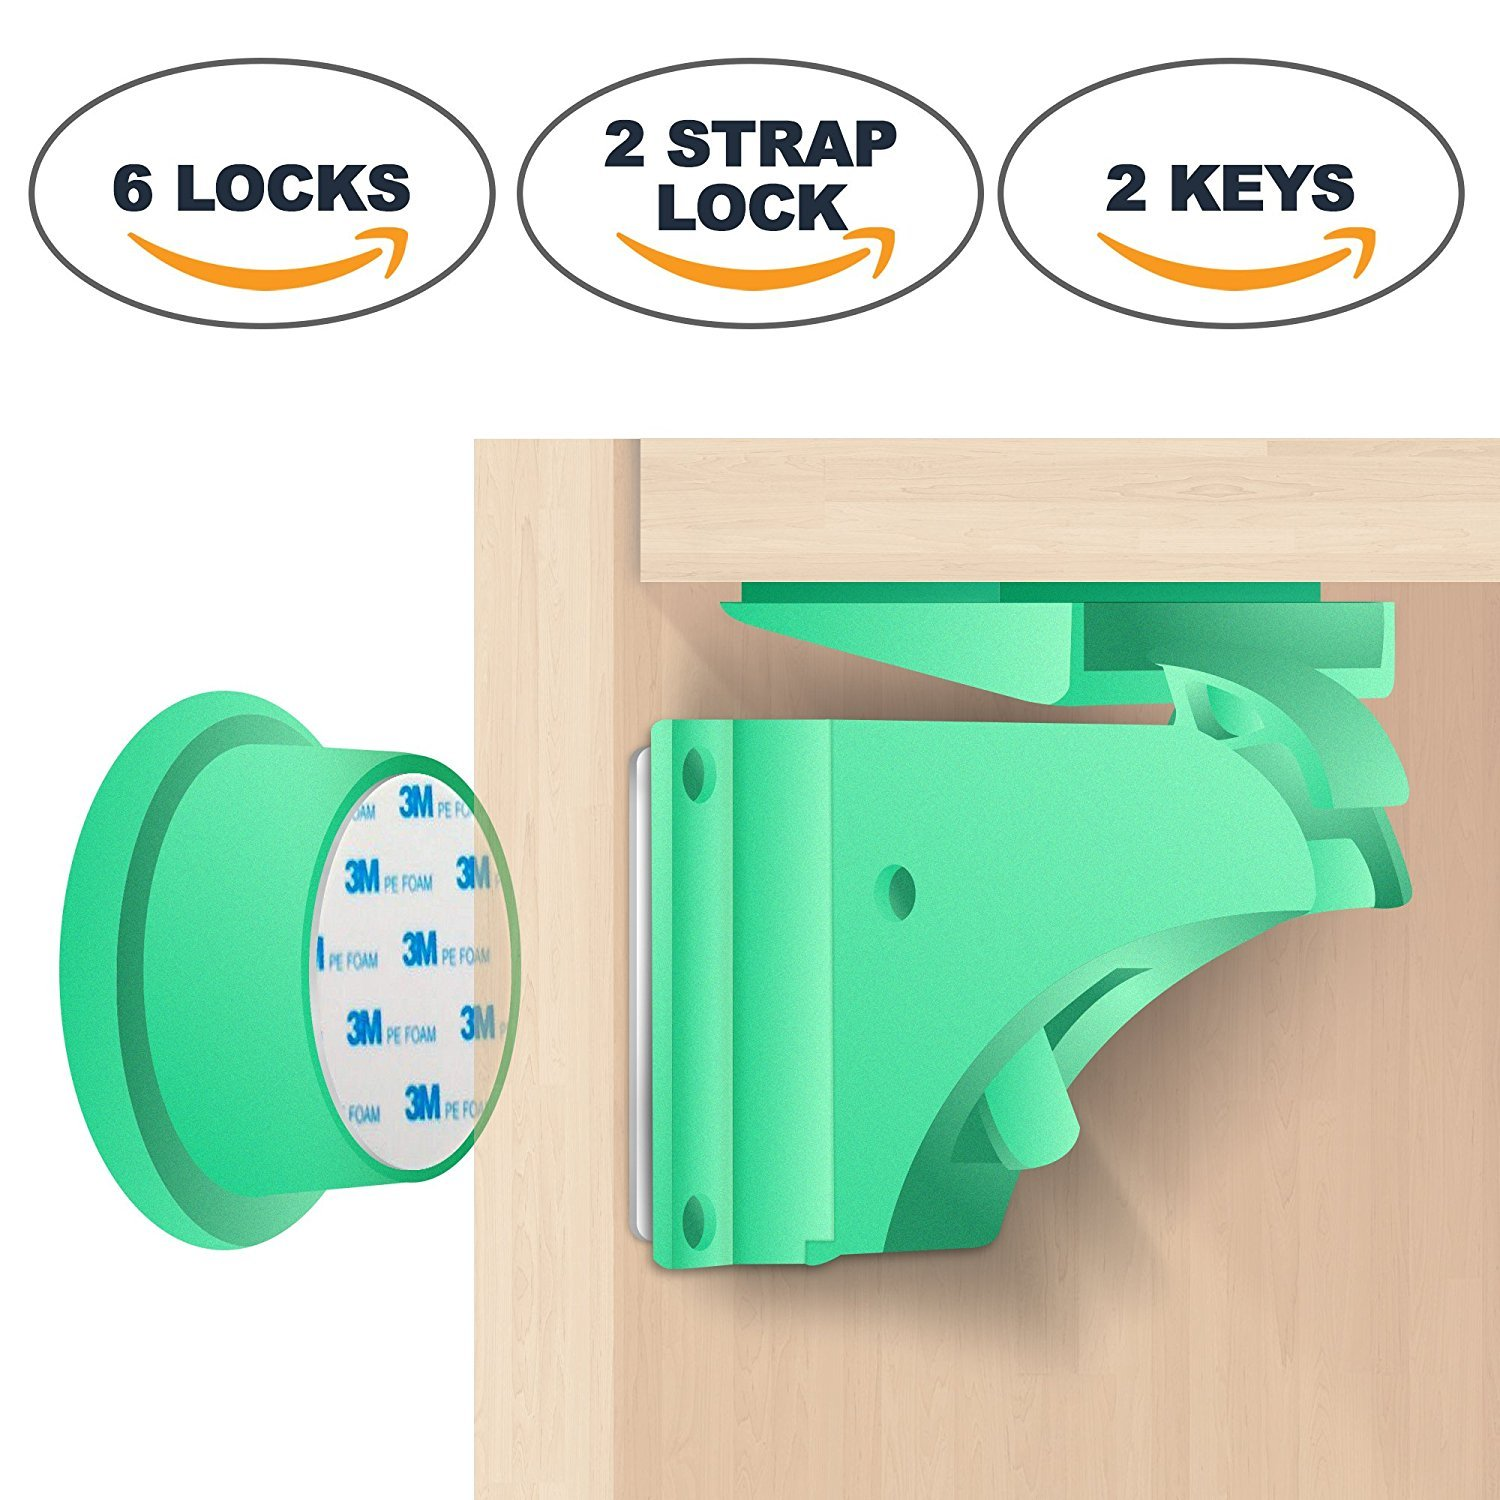 Magnetic Child Safety Locks Set Baby Proofing Latch Kit for Cabinets   Childproof Magnet Drawer Latches No Tools Needed Verrous de Security B/éb/é 6 Locks + 2 Keys